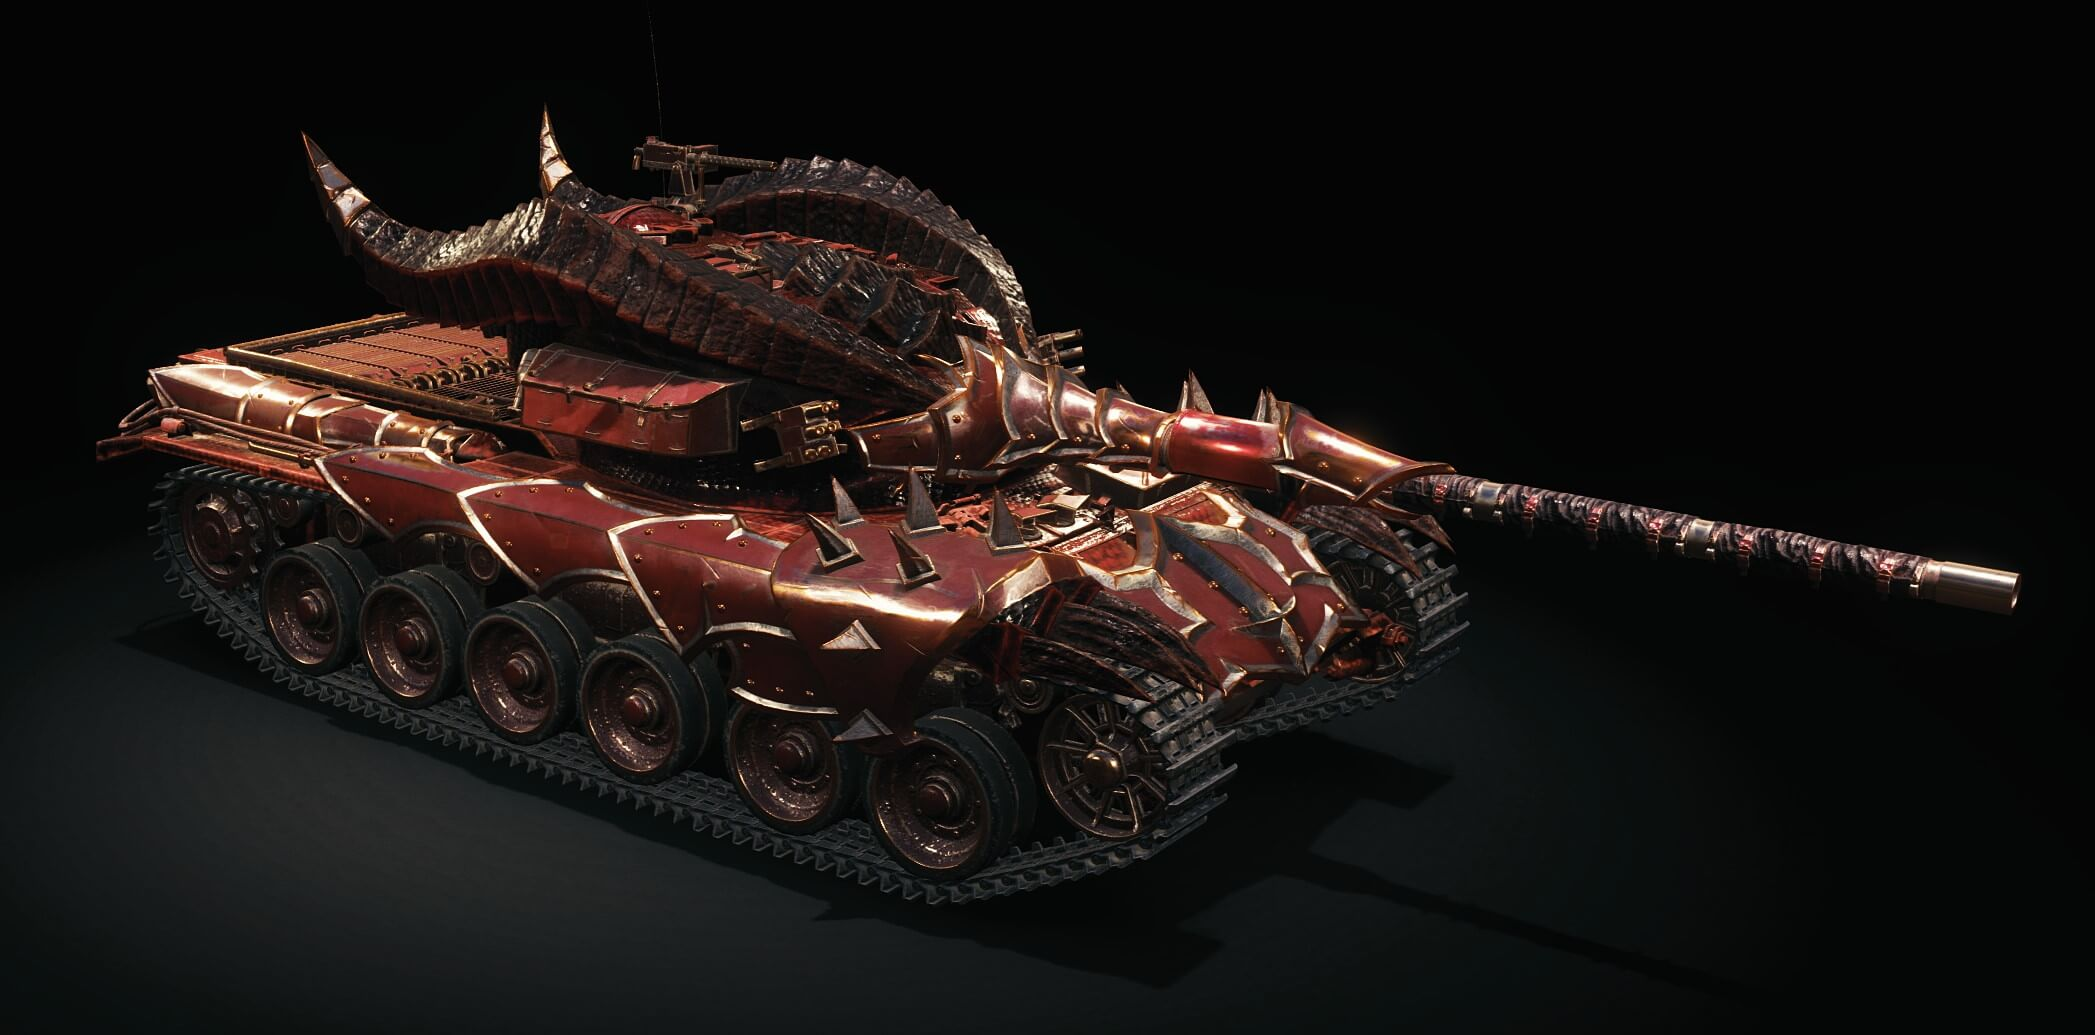 Wot Halloween 2020 The Battle of the Undead Rages On | General News | World of Tanks